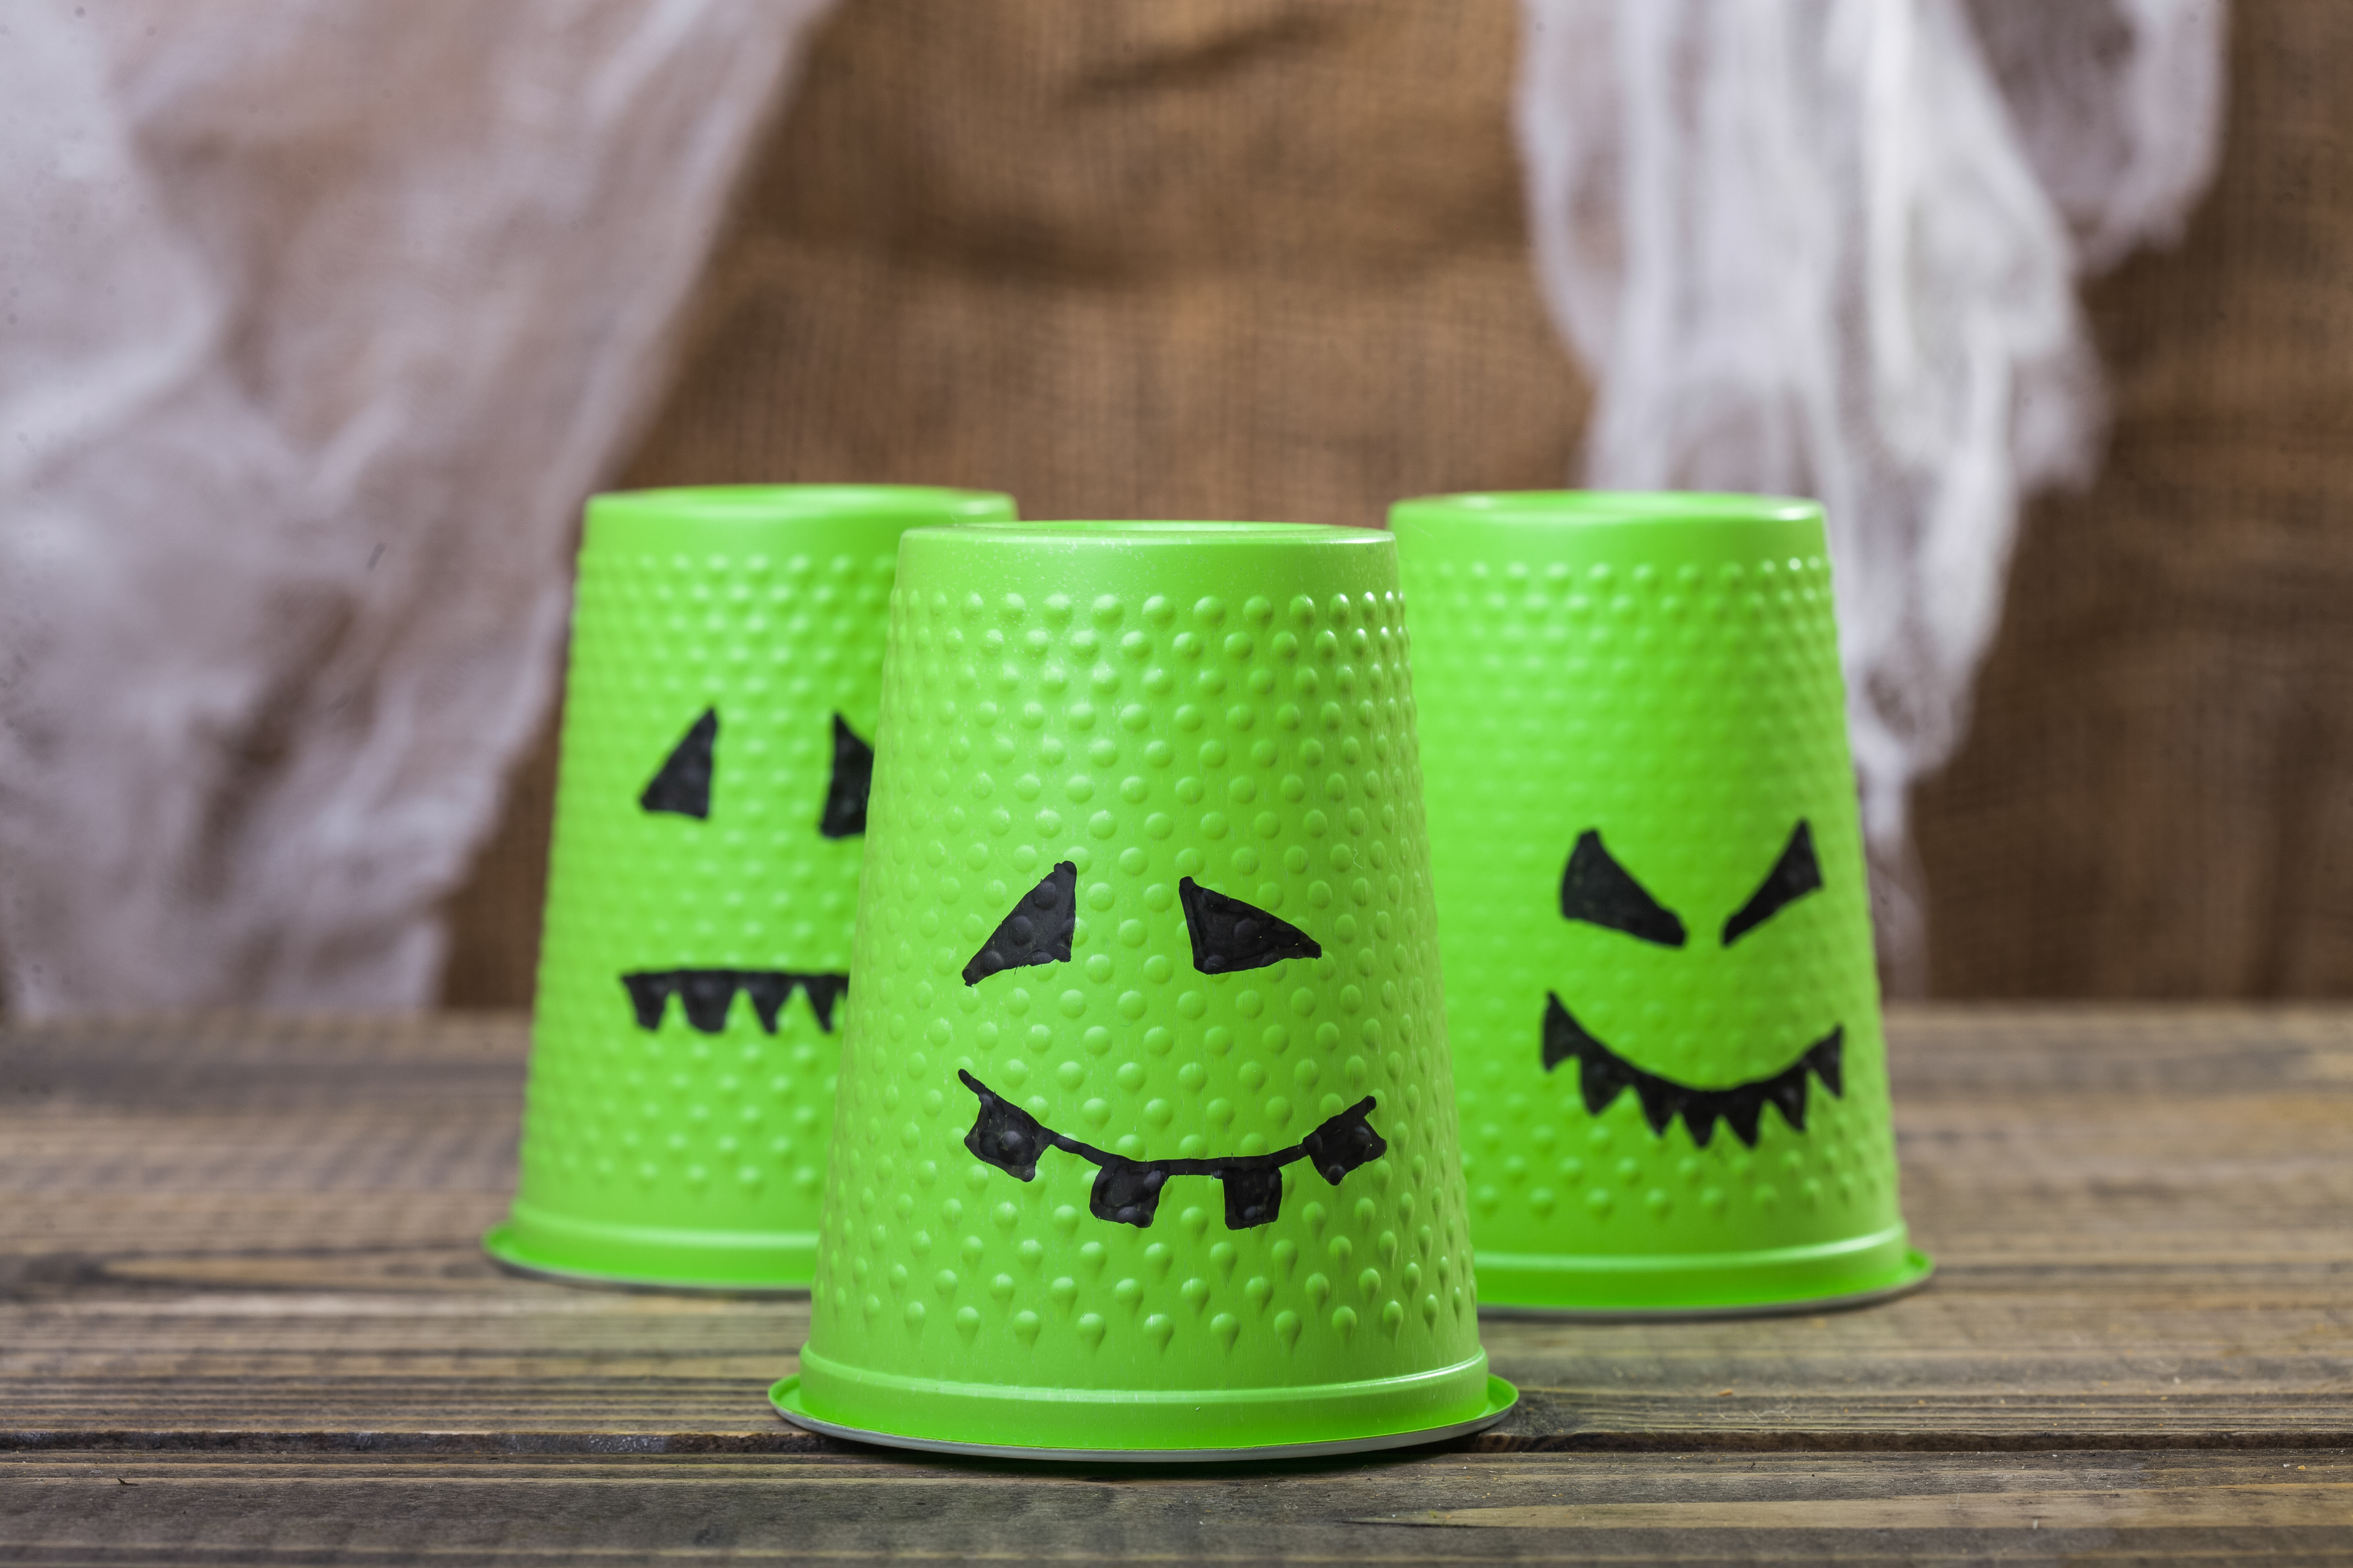 Photo set of three green disposable cups with Halloween ghost scary faces smiles with teeth drawn in black felt pen standing on wooden table over blurred rustic background horizontal picture